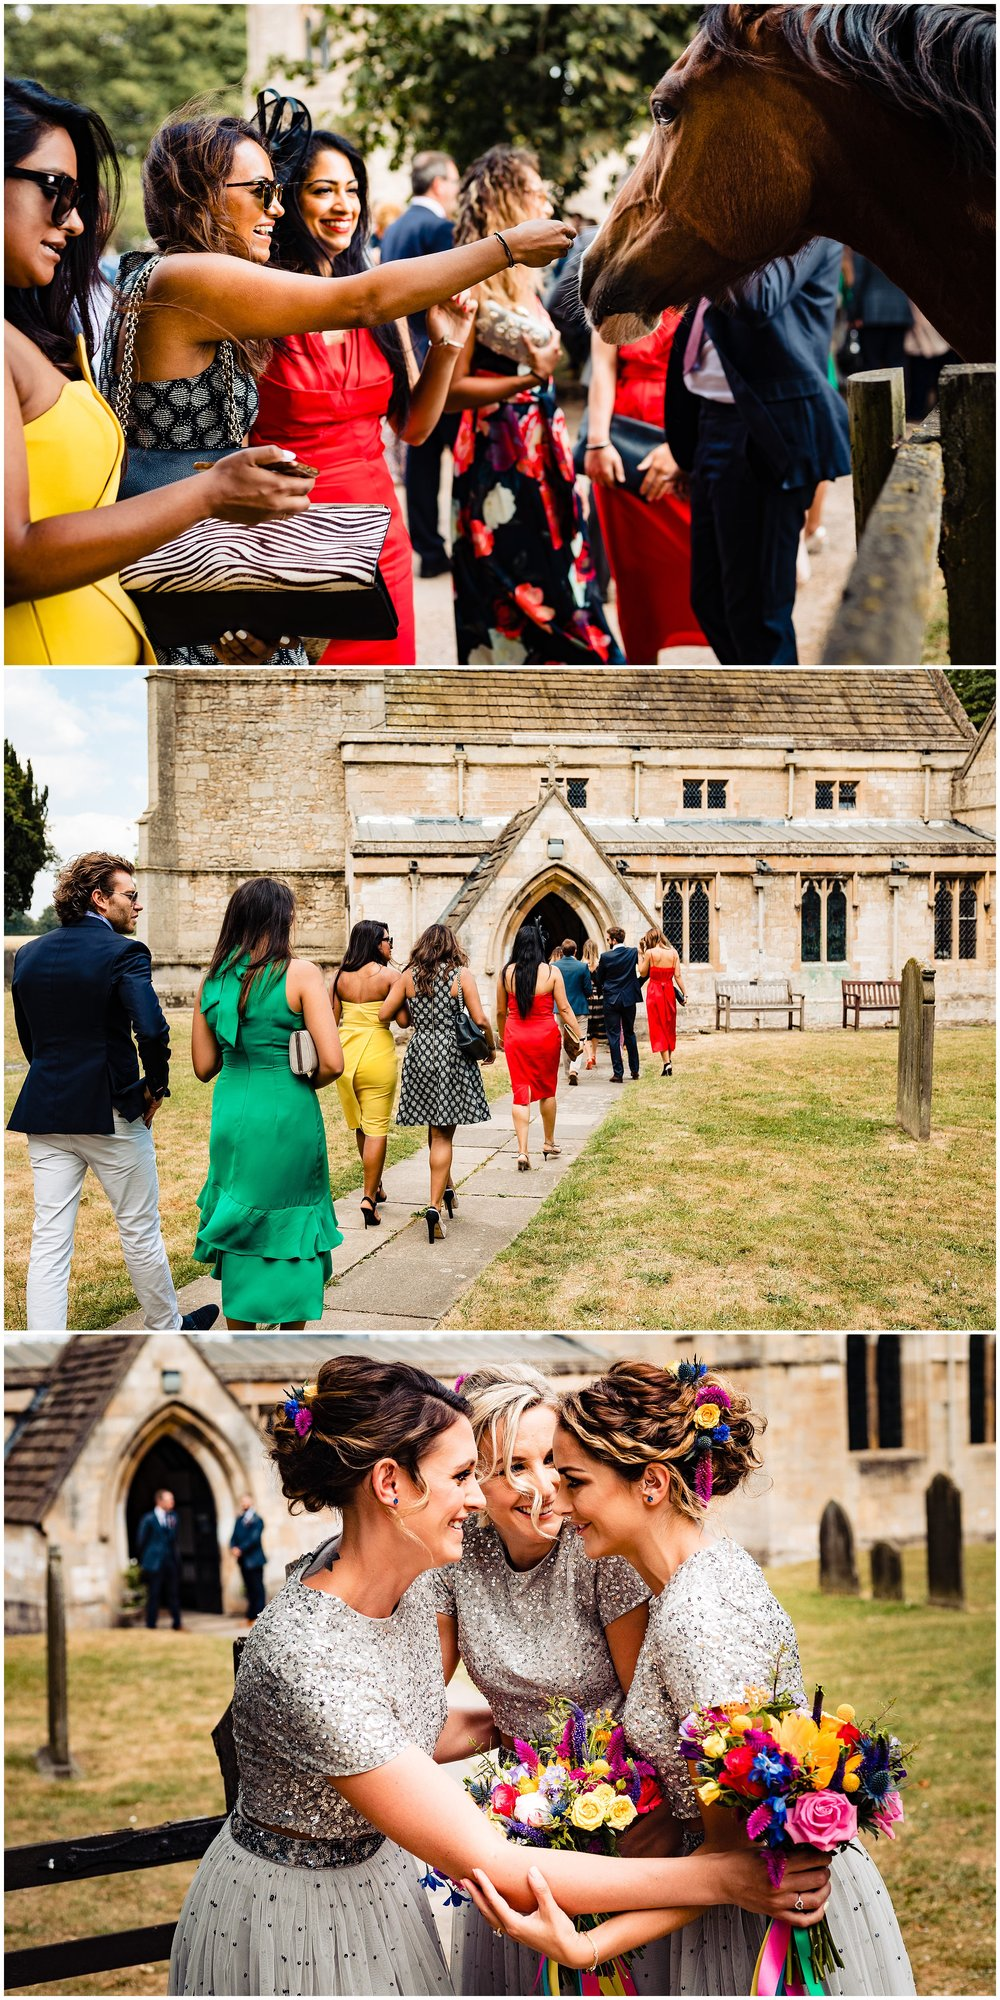 guests at a wedding and bridesmaids outside the church in yorkshire